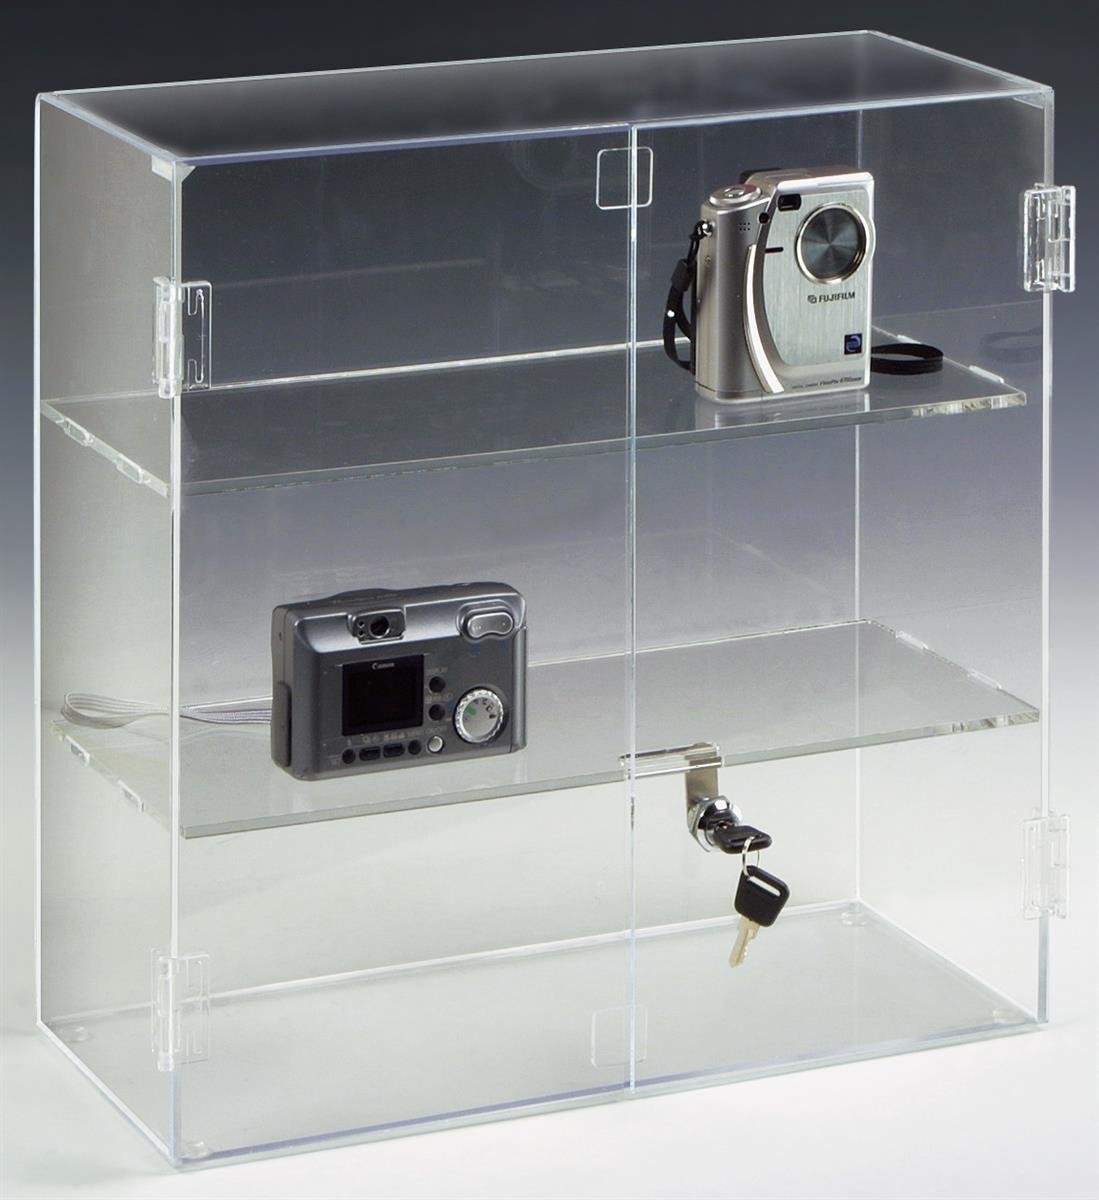 Displays2go 16.5 by 16.25-Inch Countertop Acrylic Display Case with 2 Shelves JH172